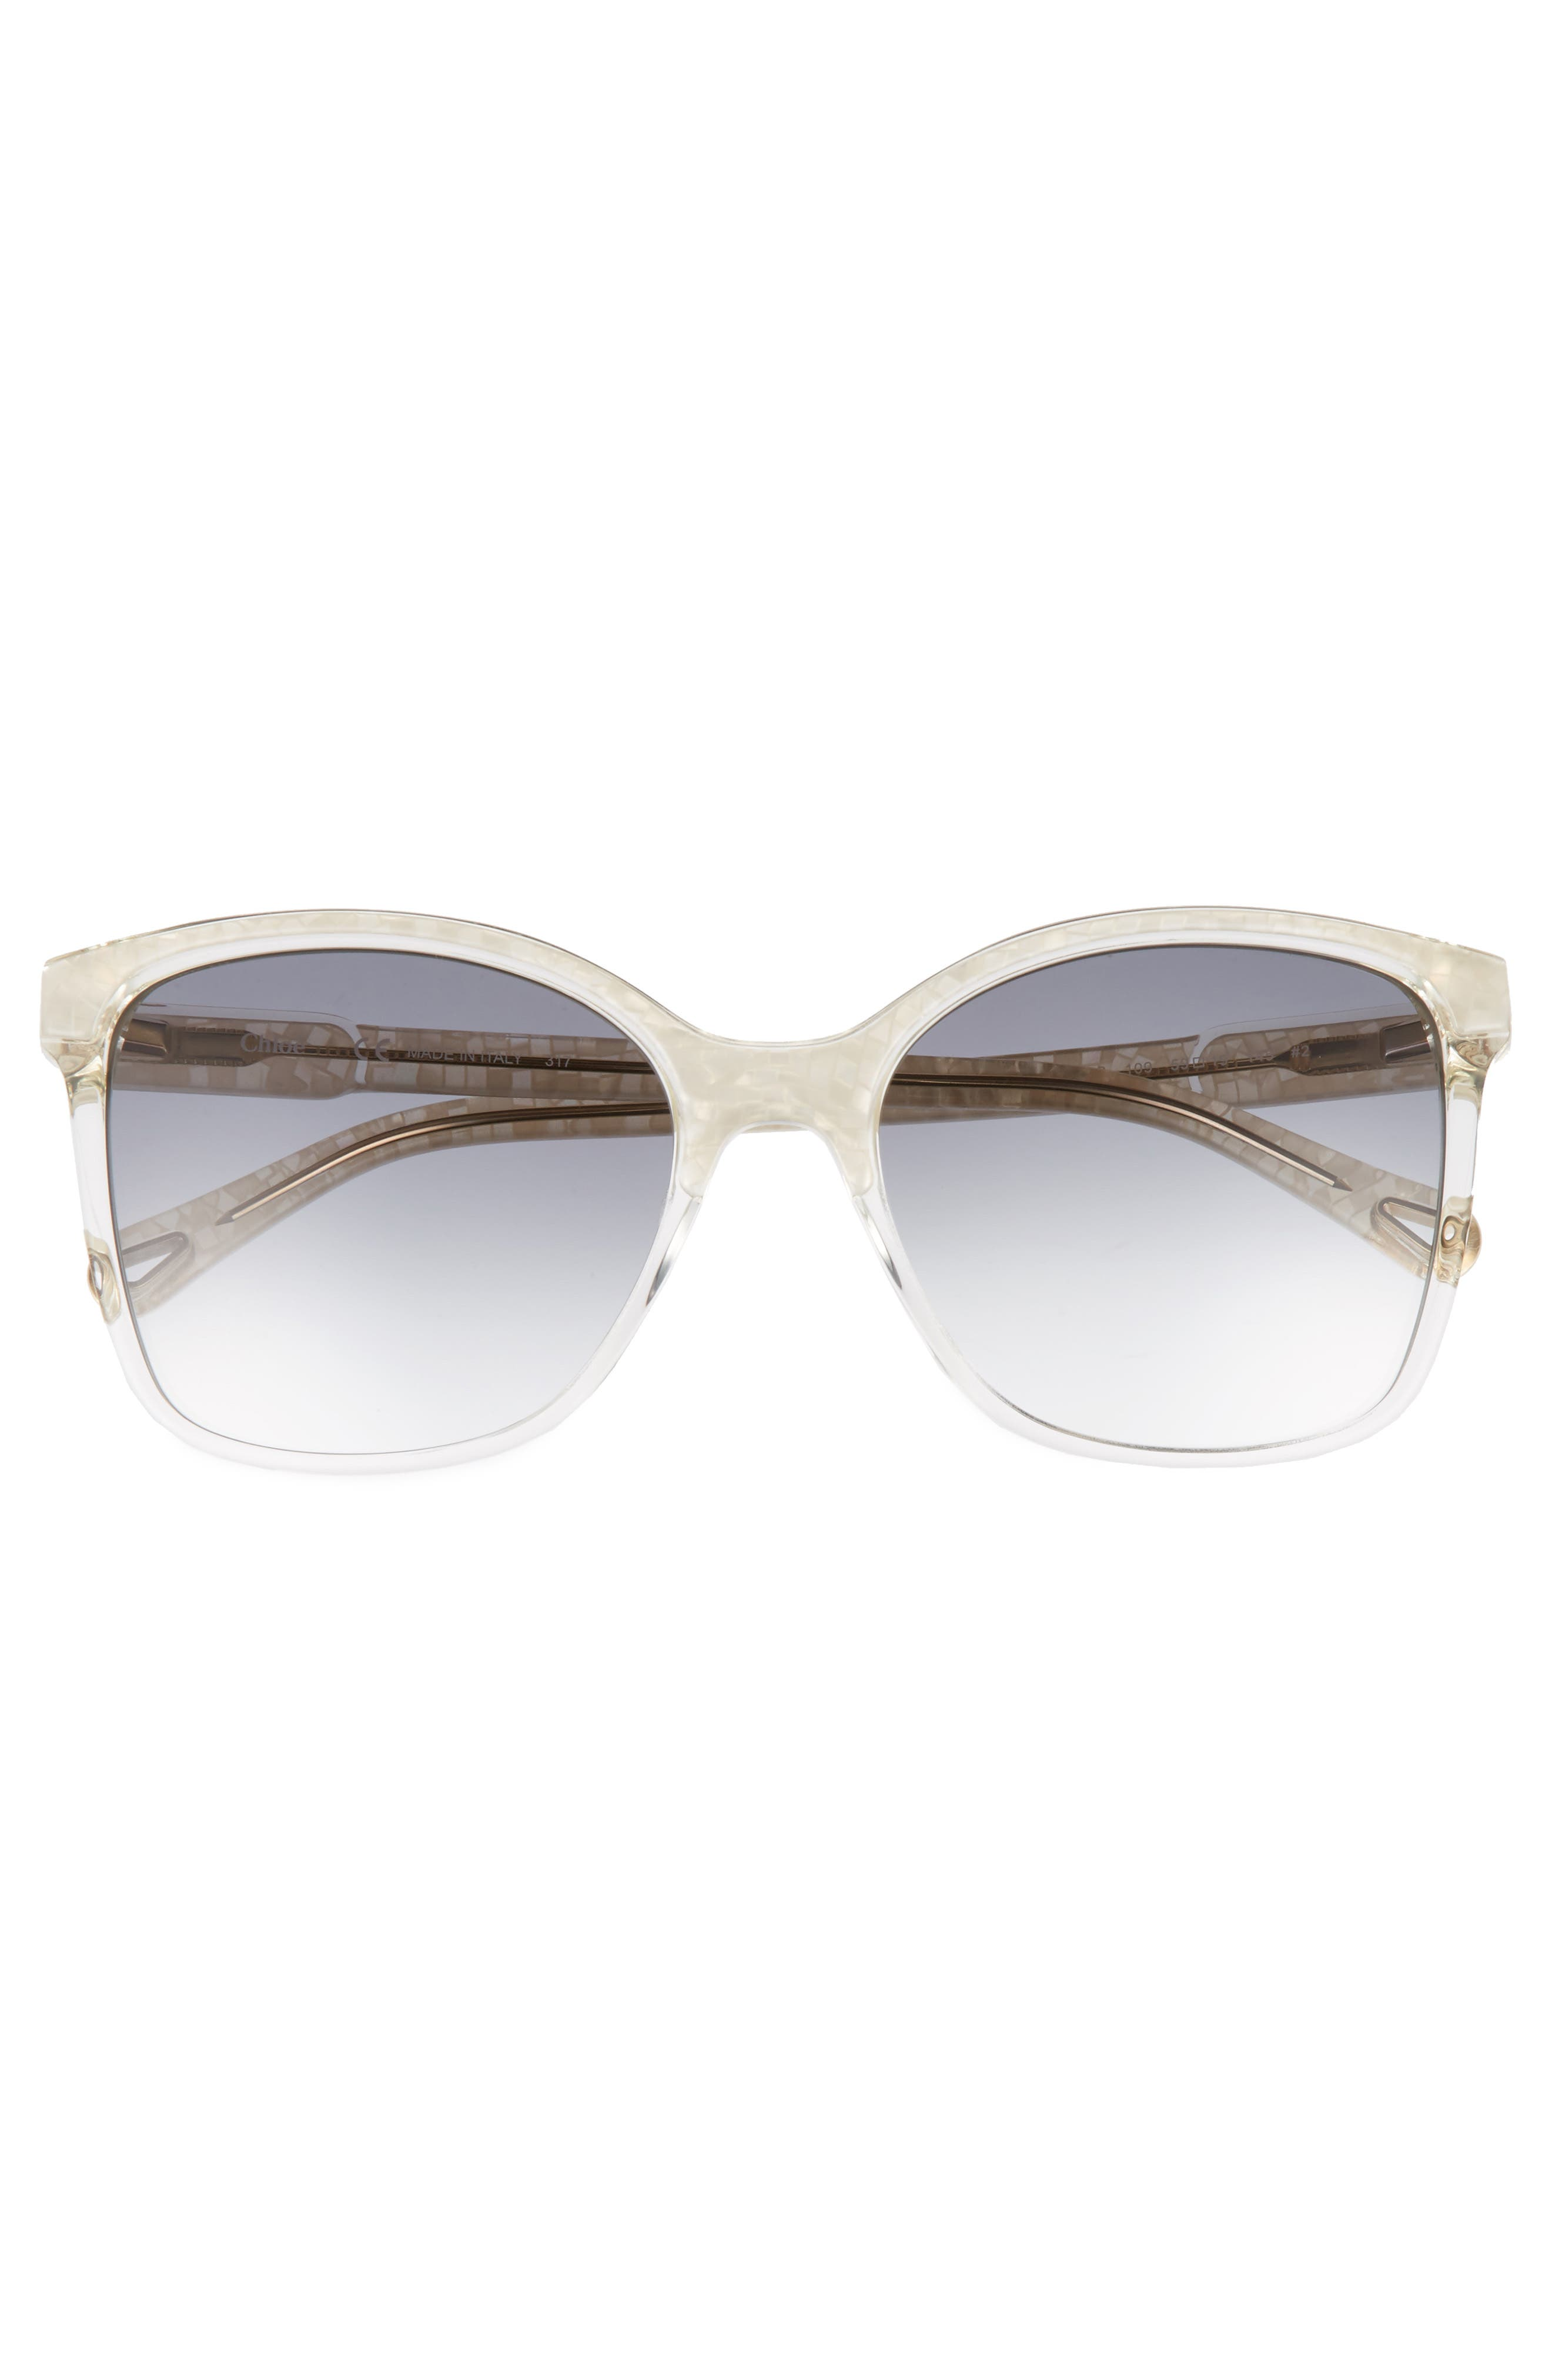 59mm Brow Bar Sunglasses,                             Alternate thumbnail 3, color,                             Pearl/ Champagne